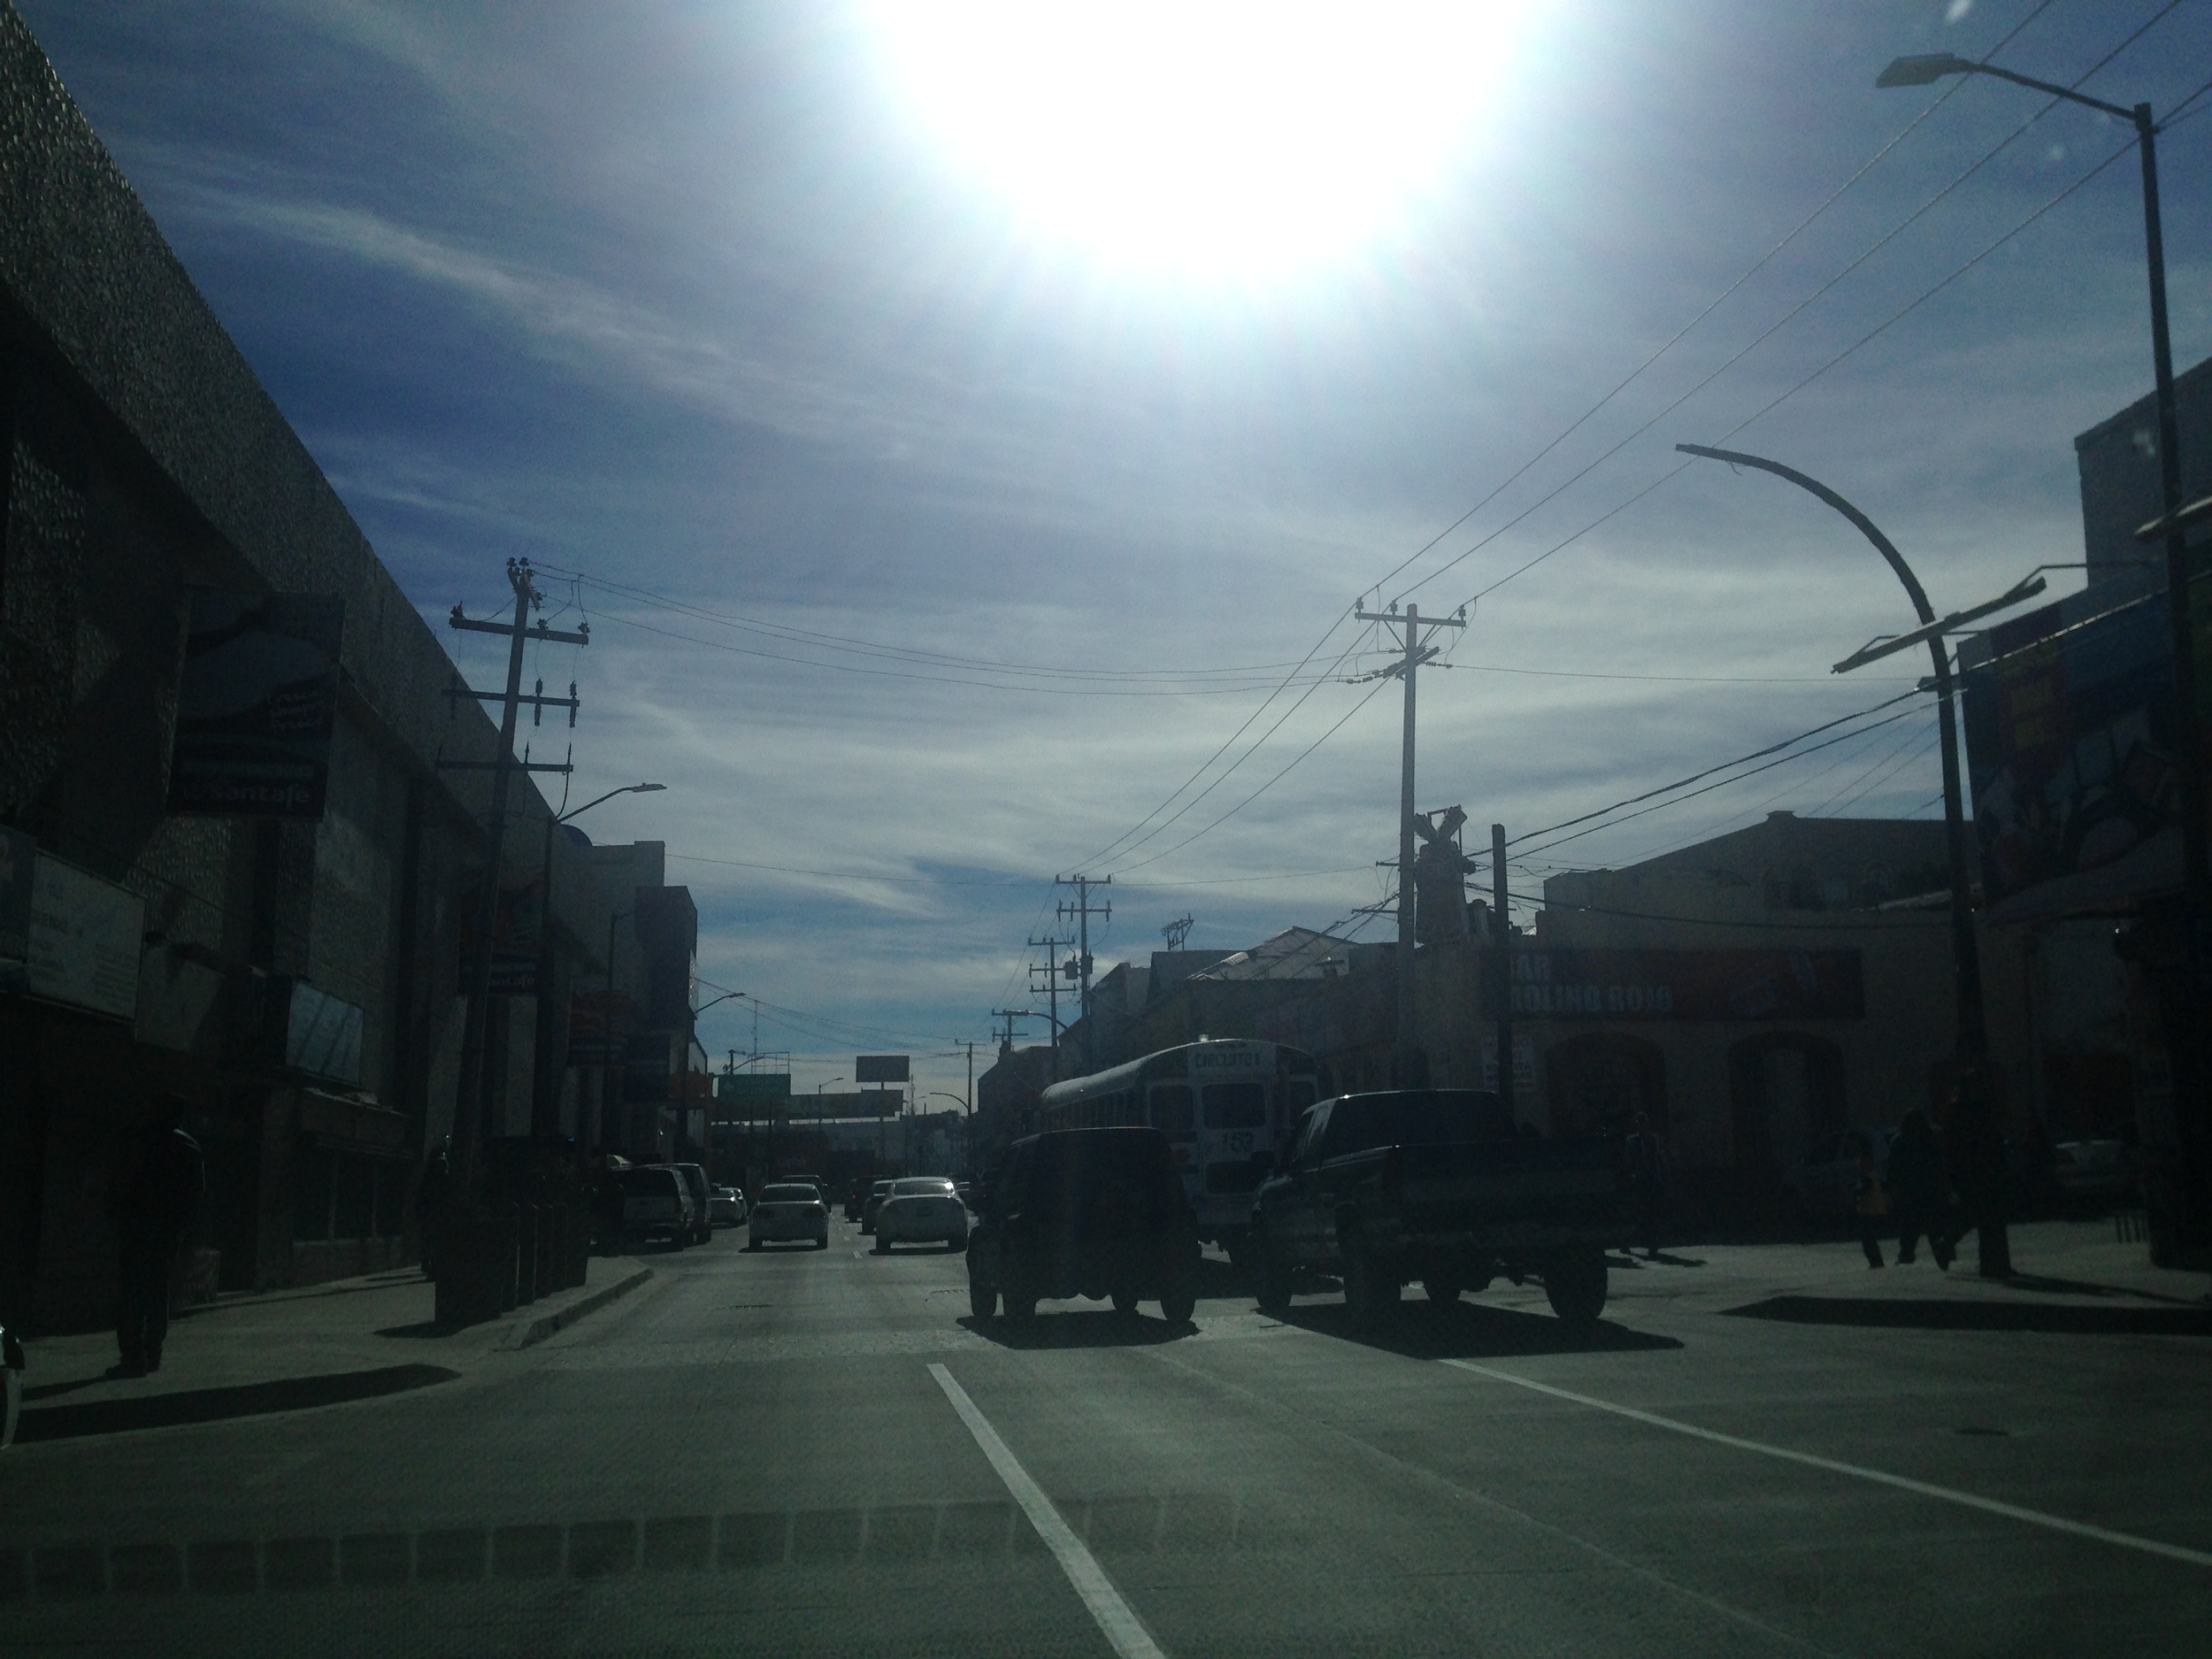 Driving through Nogales, Mexico